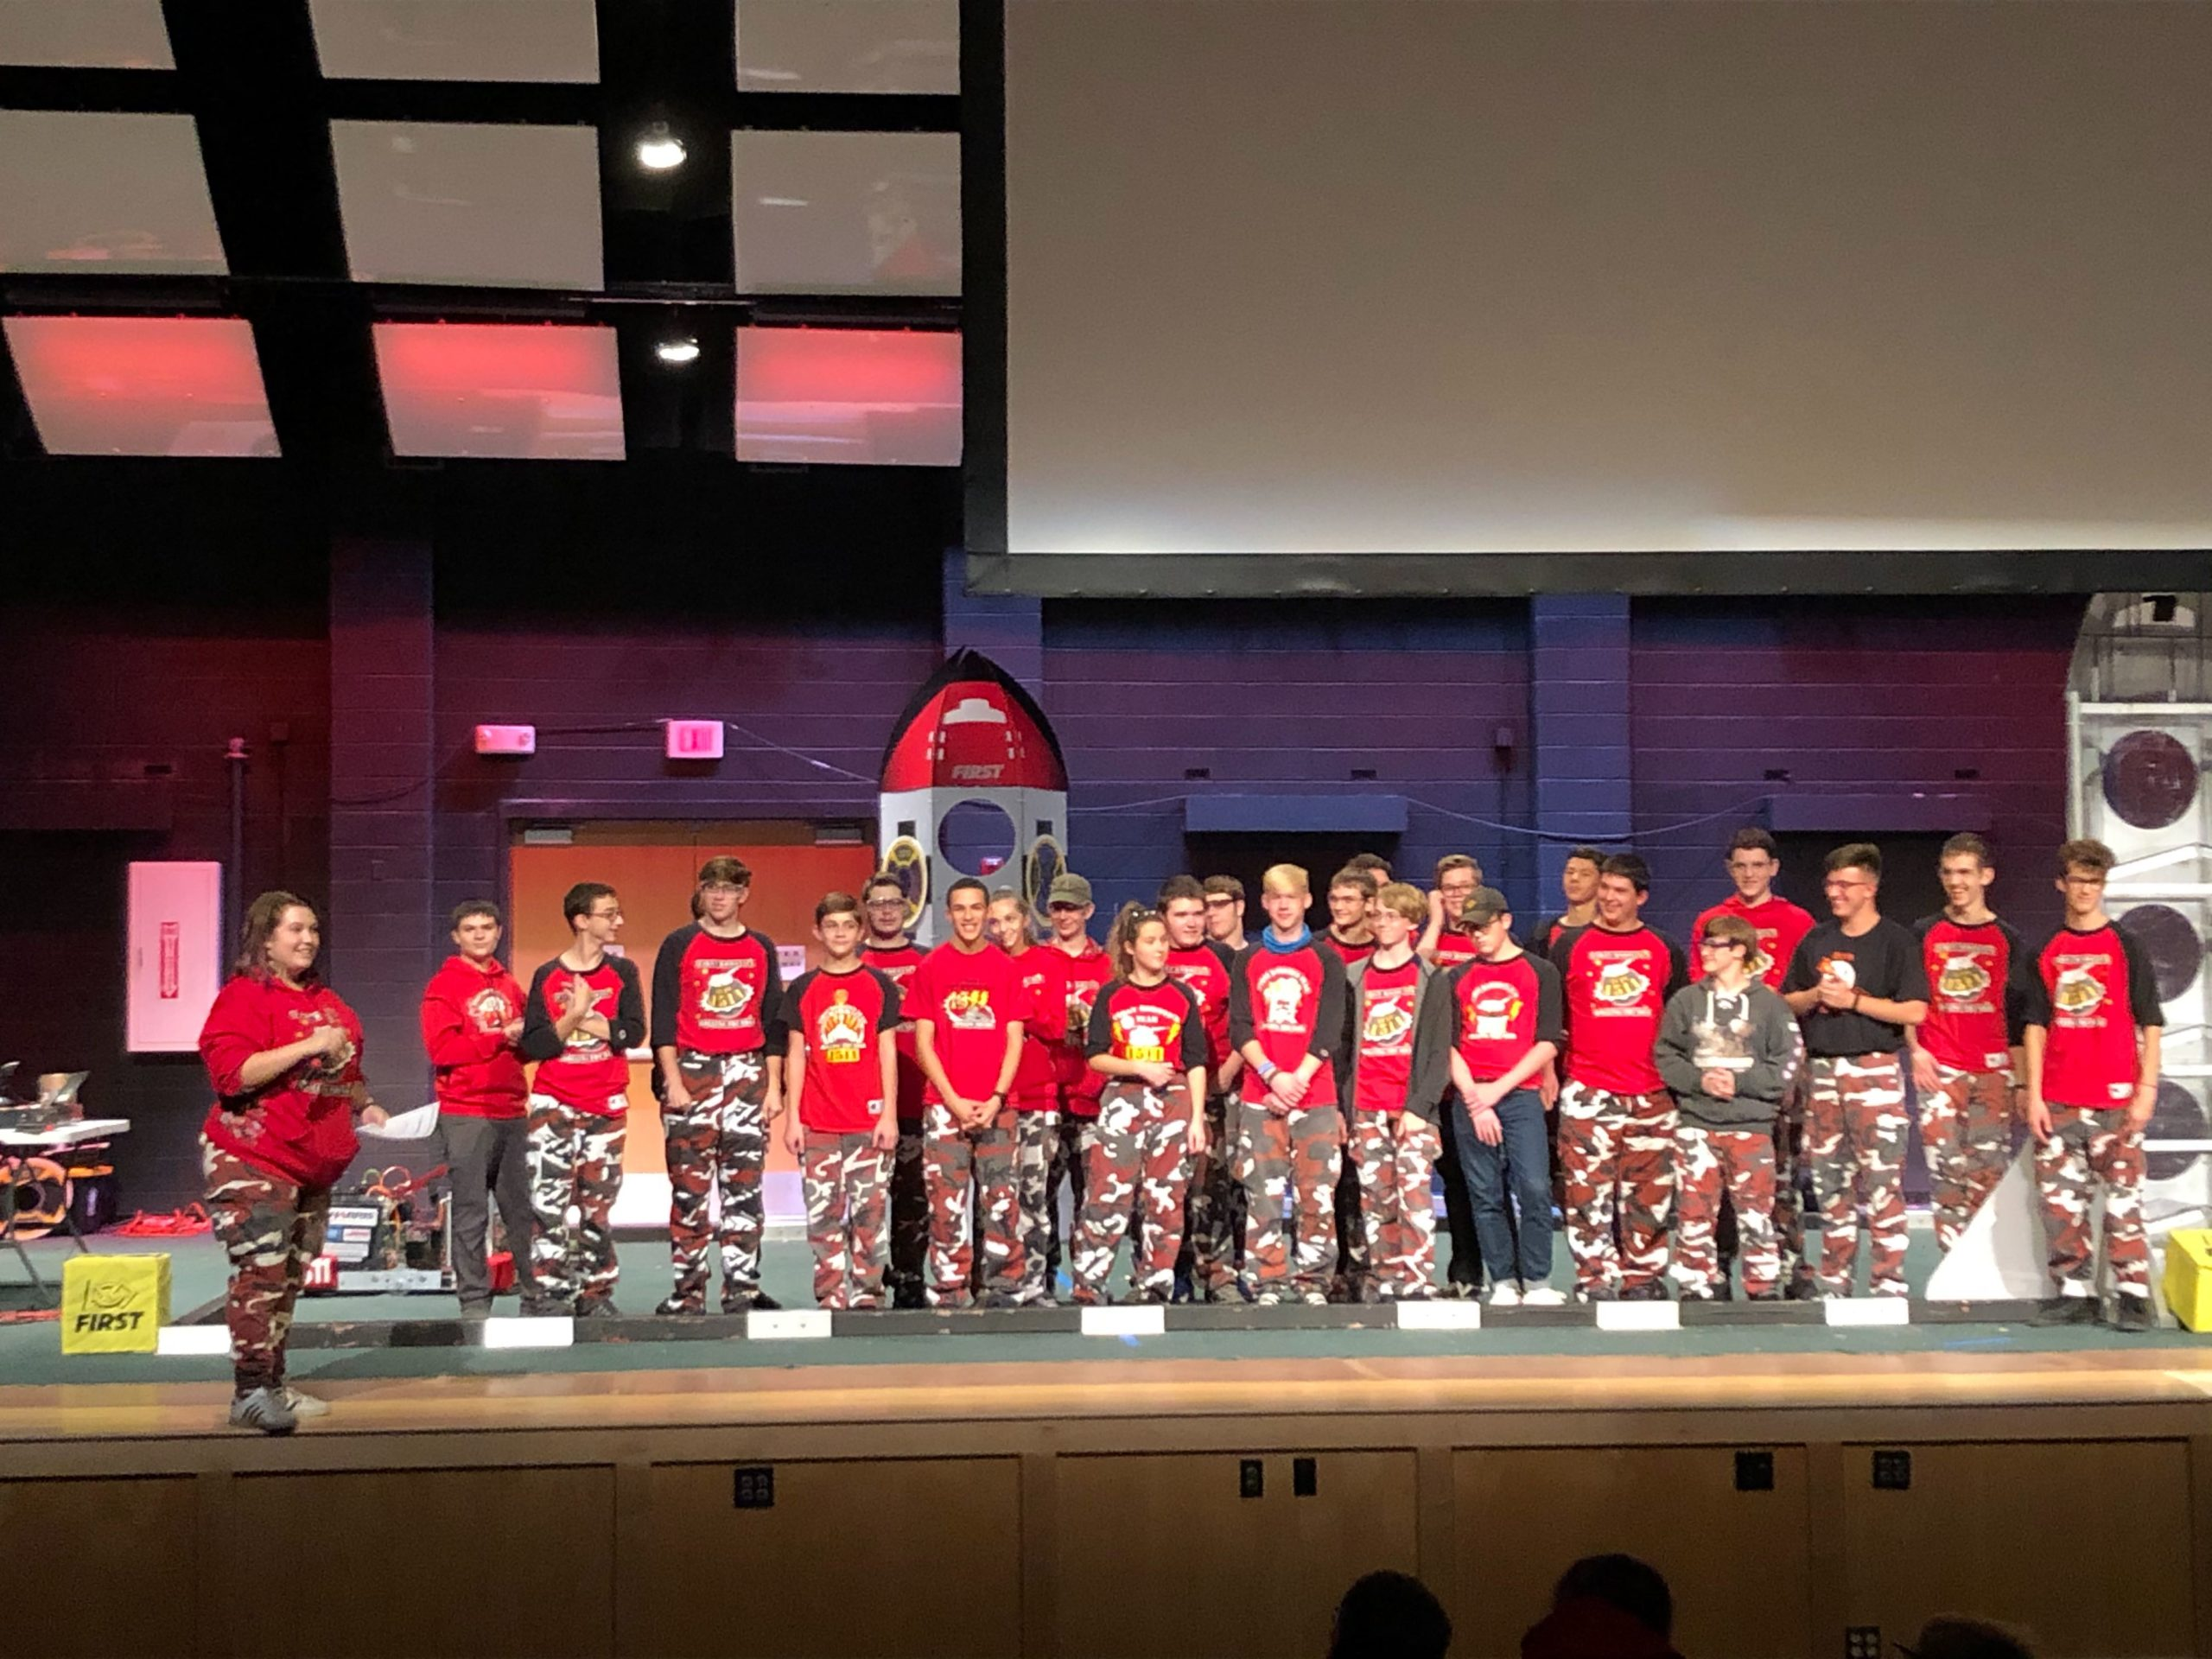 FIRST Team 1511 students in red shirts and camo pants on an auditorium stage at Cage Match Event